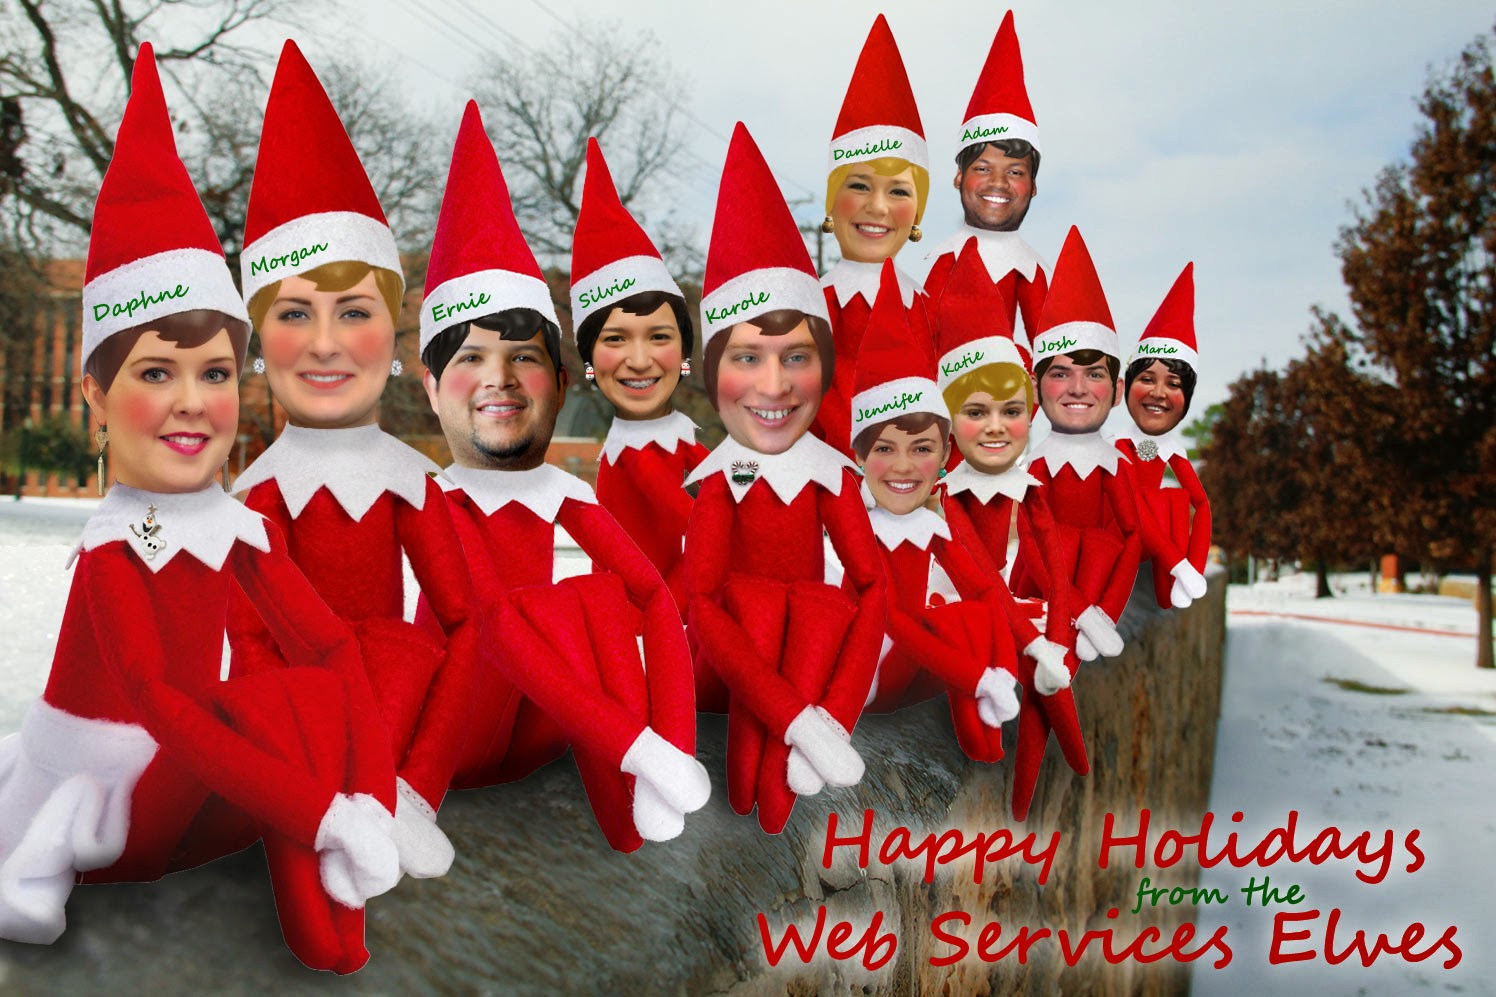 Happy Holidays from Web Services!